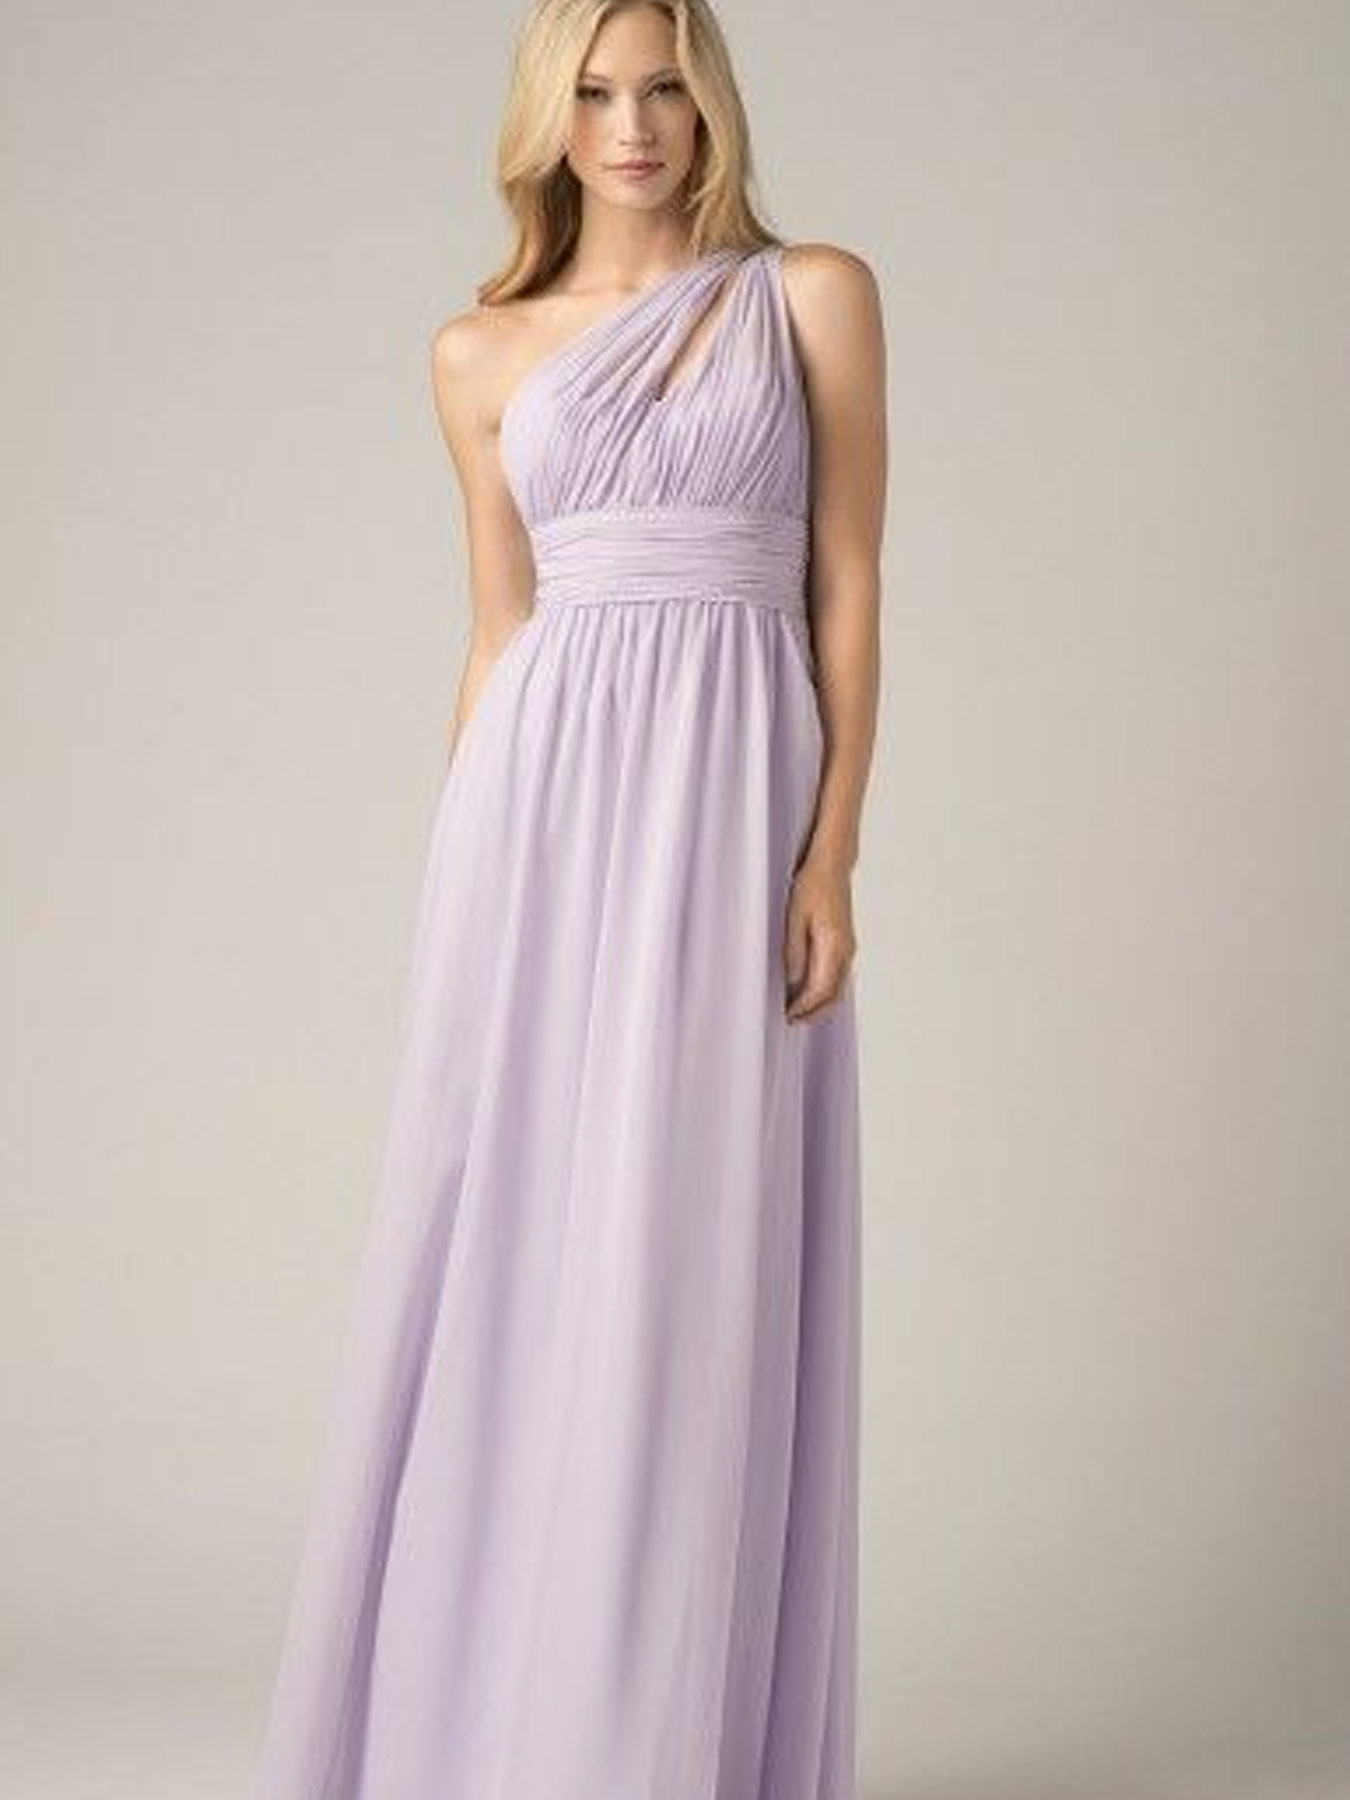 Top 20 bridesmaid bouquet dress color combinations of 2015 lilac and hot pink wedding flowers buffalo ny lipinoga florist 2 ombrellifo Image collections